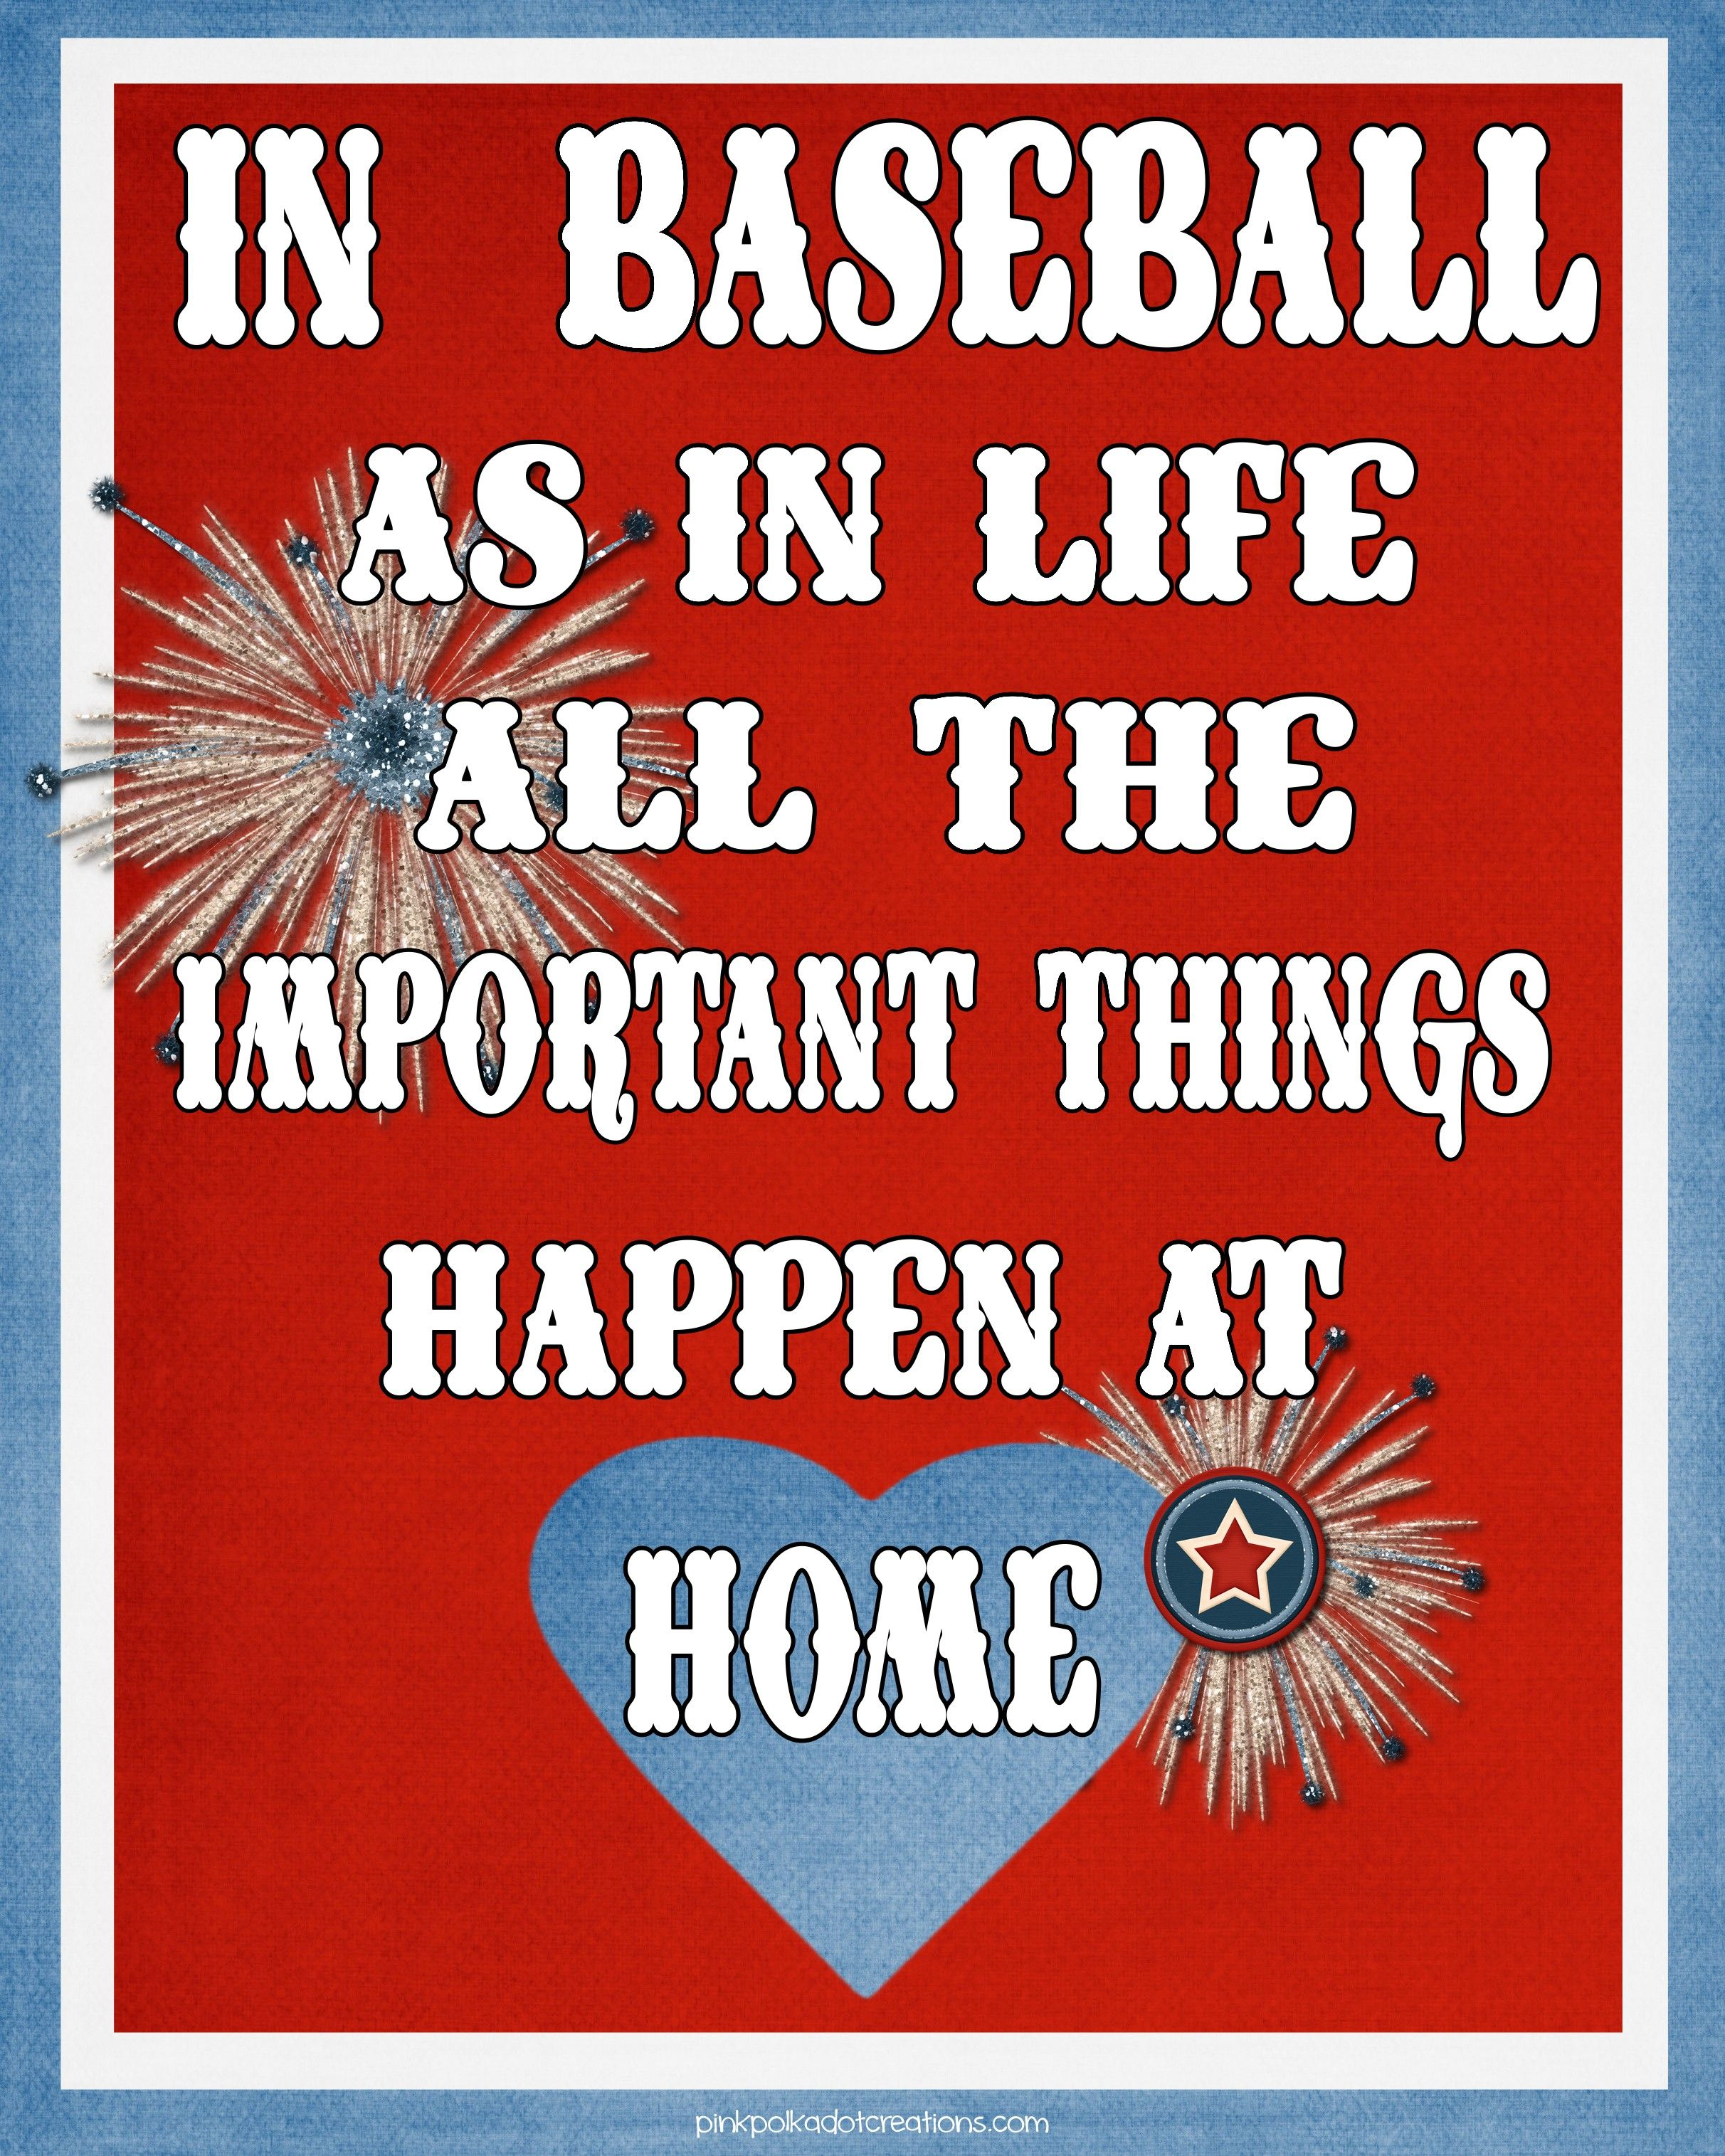 Baseball Quotes About Life Pink Polka Dot Creations Thursdays Thought In Baseball As In